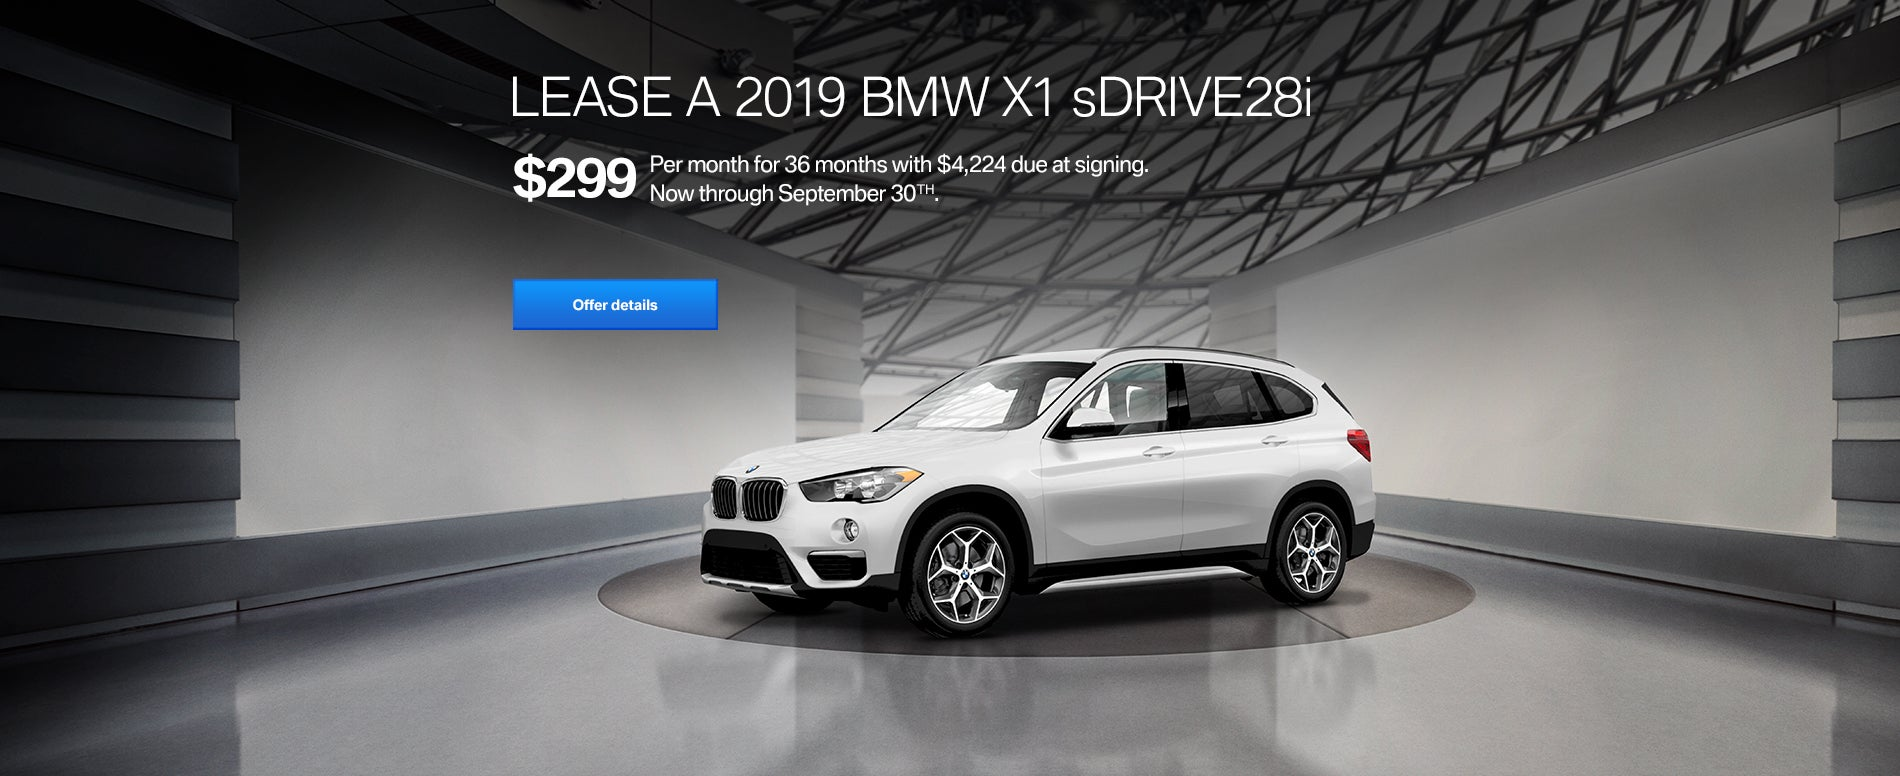 Fayetteville Auto Mall >> Bmw Dealership Fayetteville Nc Eastover Clement